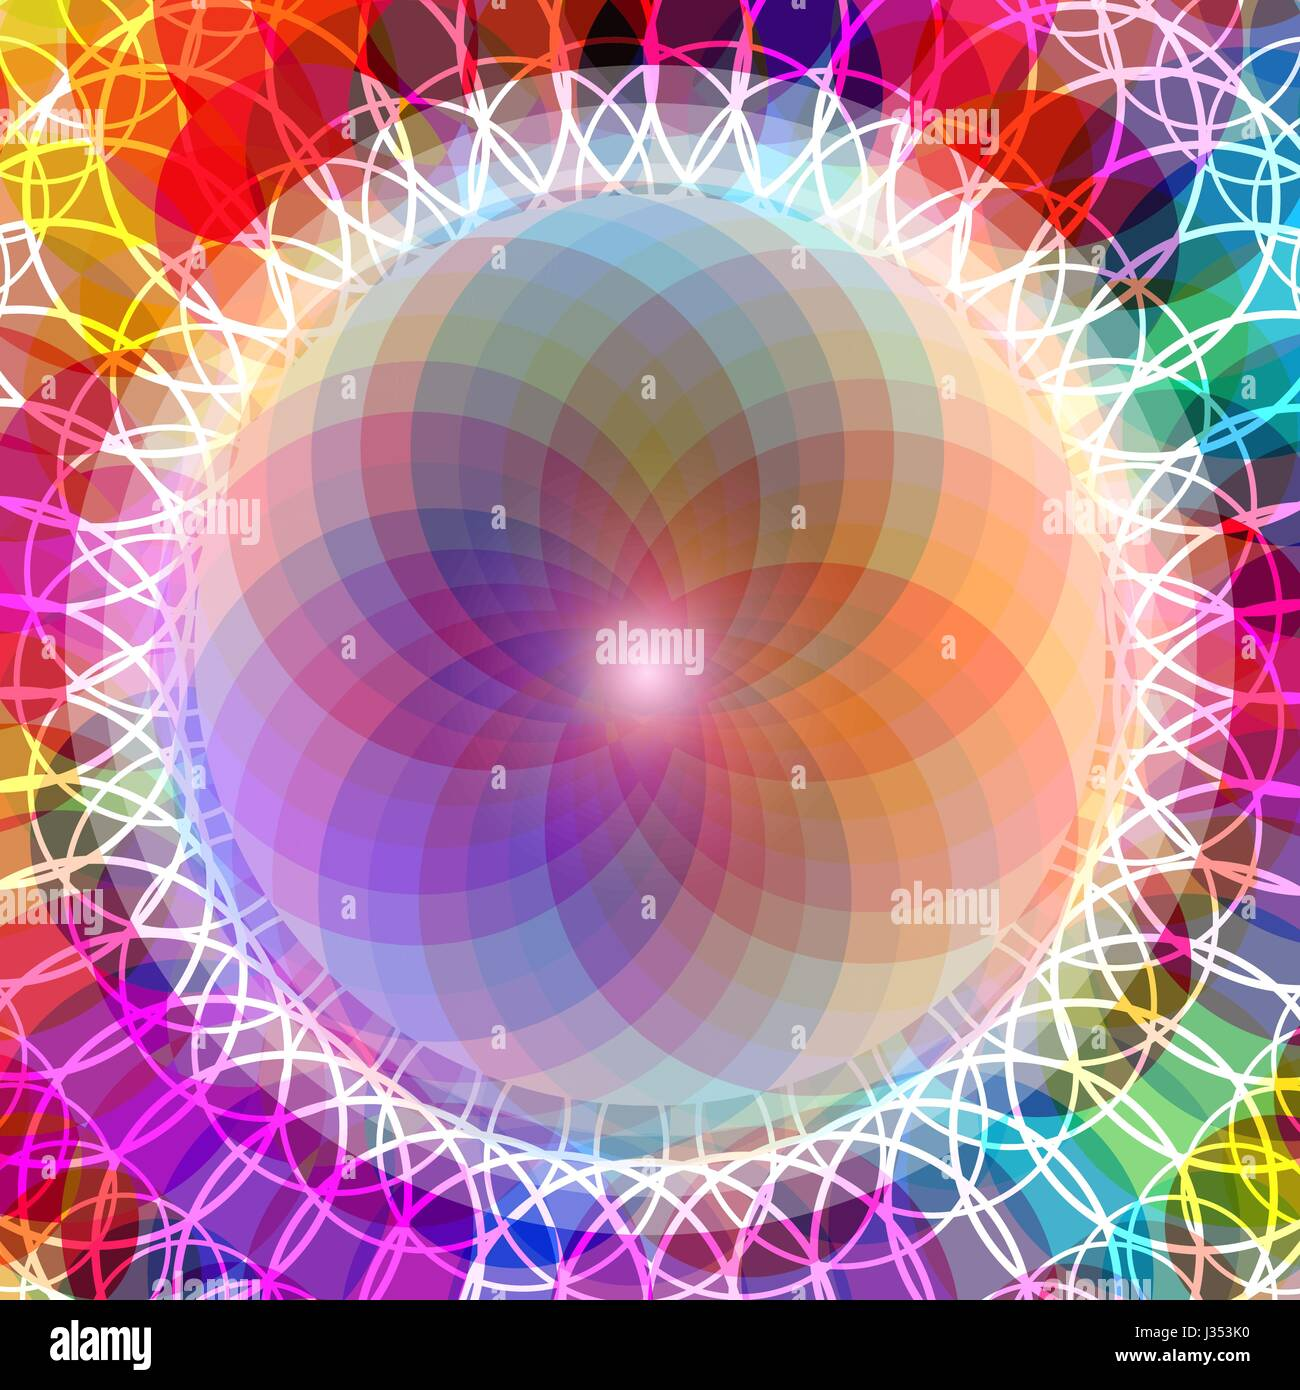 Abstract colorful pattern of emotional balance - Stock Image